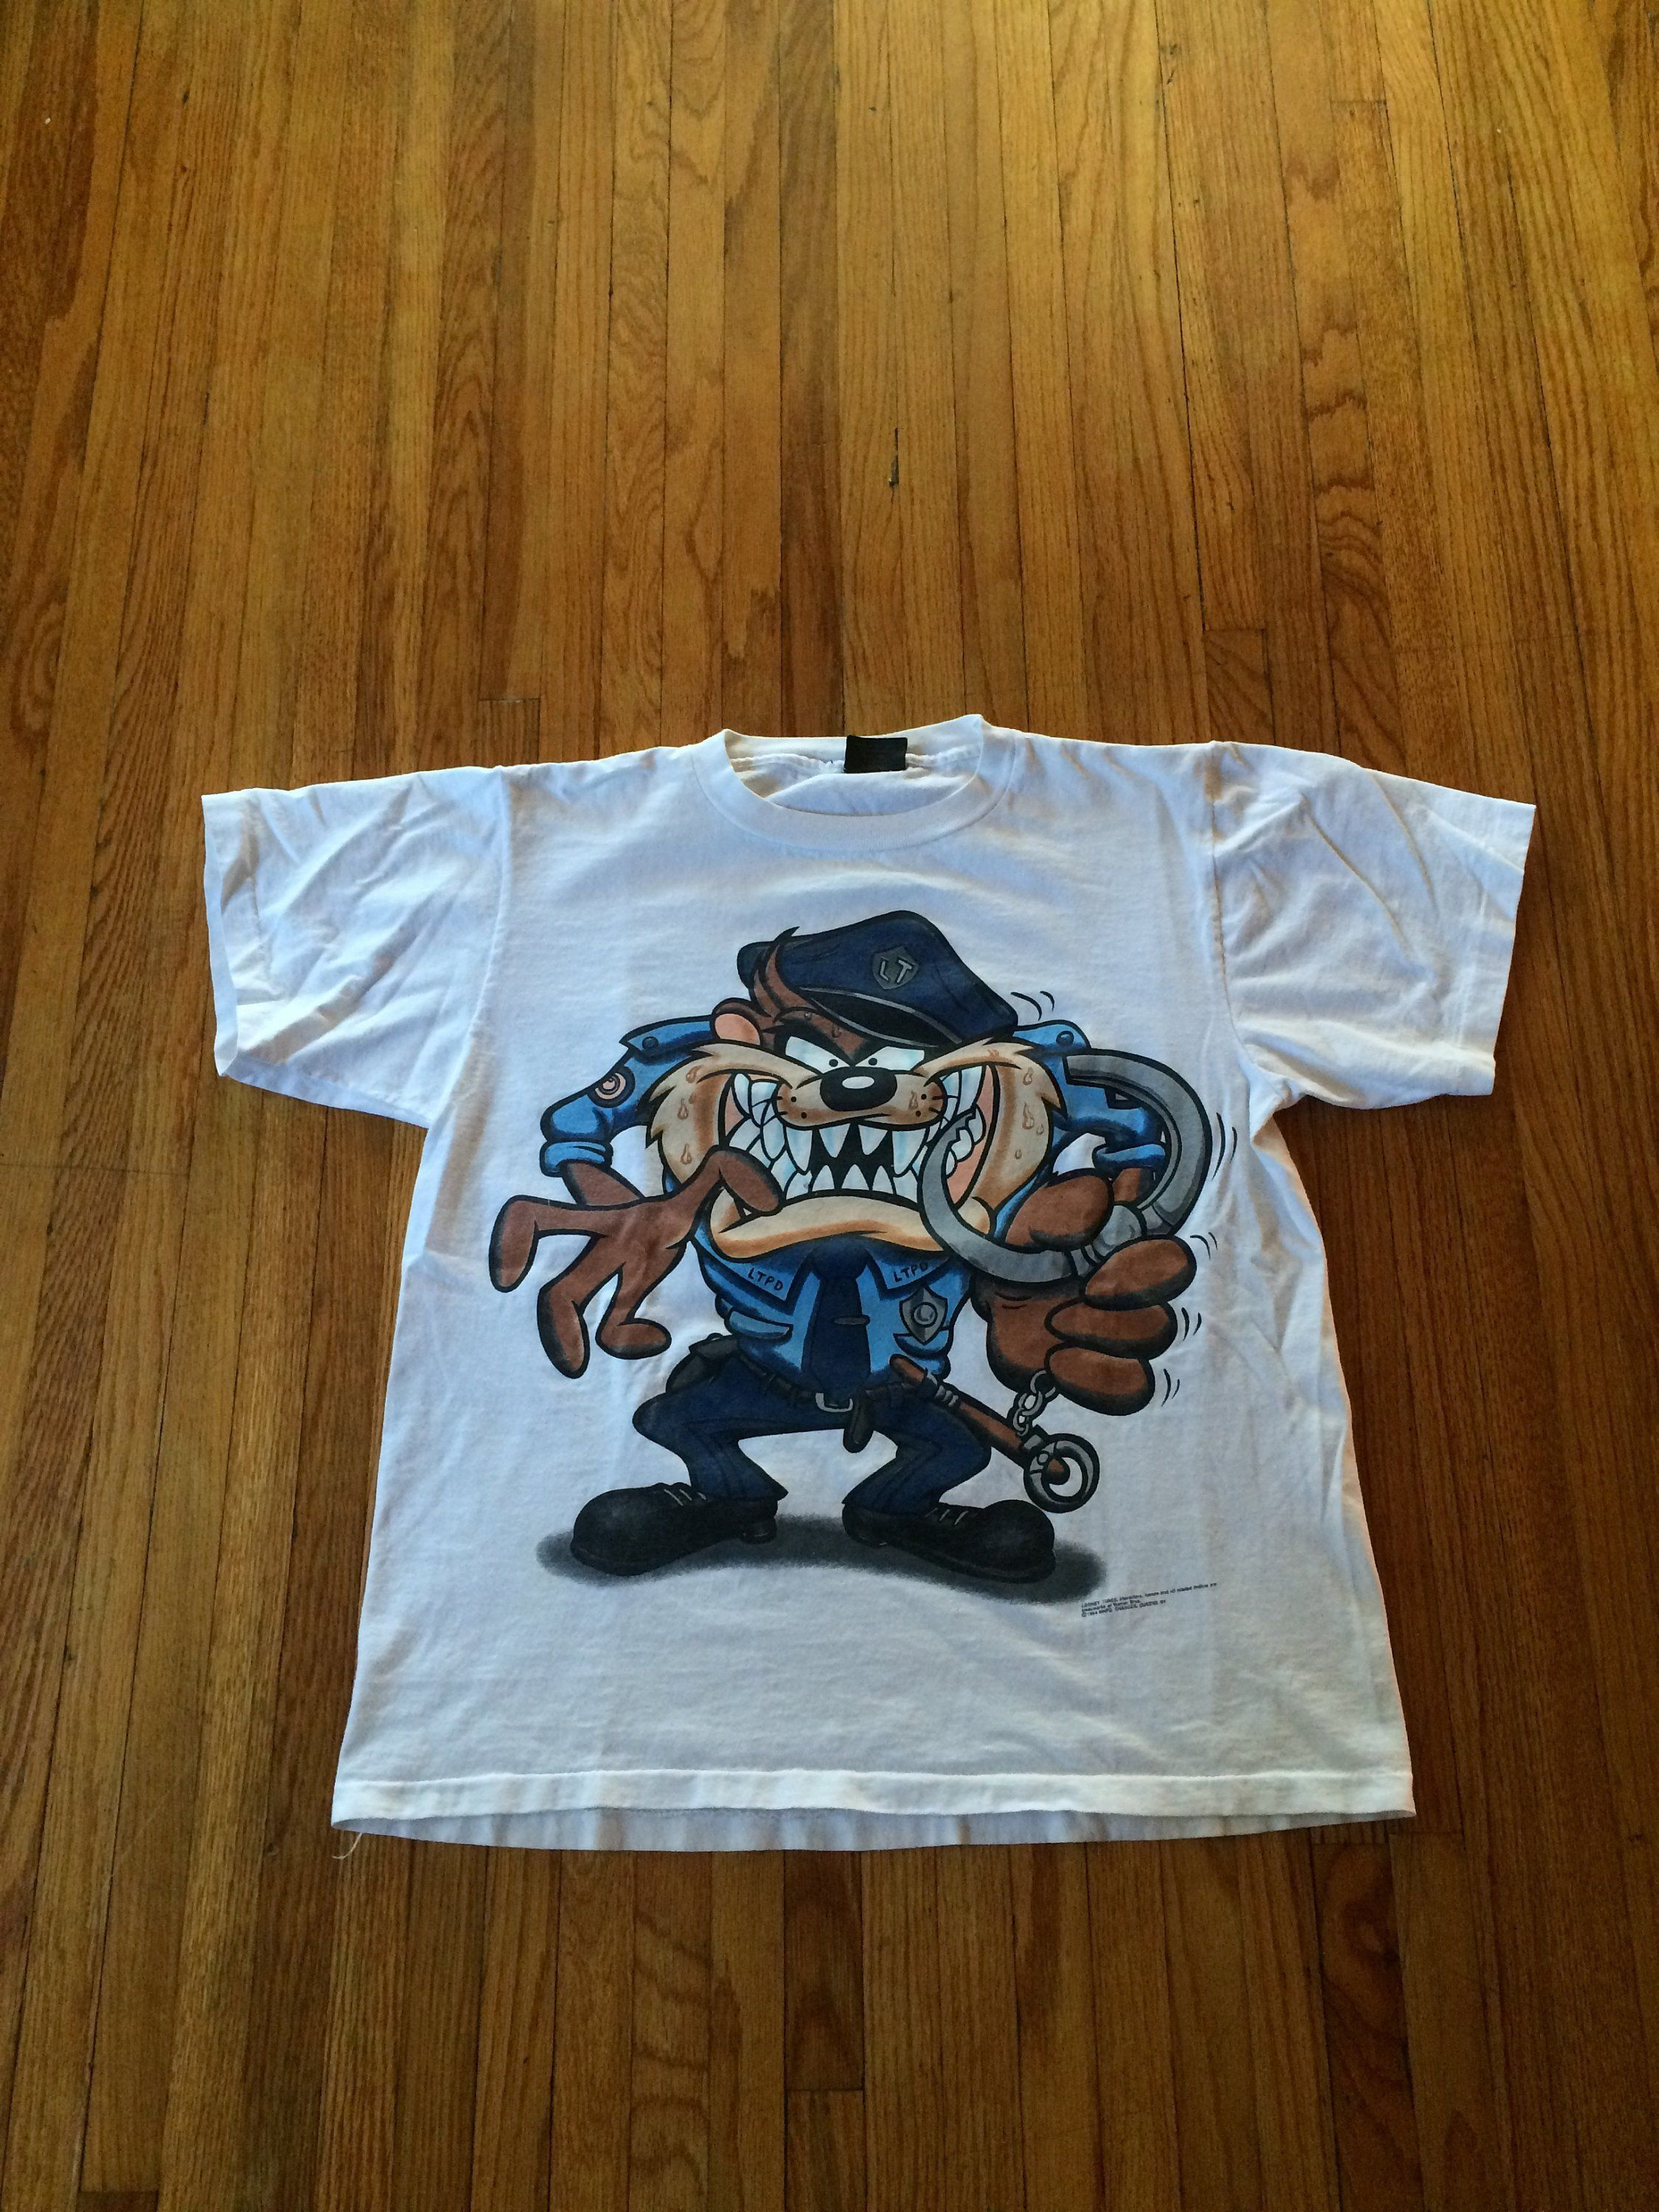 f62d7d590830 Vintage 90 s Looney Tunes Taz Looney Tunes Police Officer Double Sided  Print T-Shirt (free shipping) by VintageVanShop on Etsy